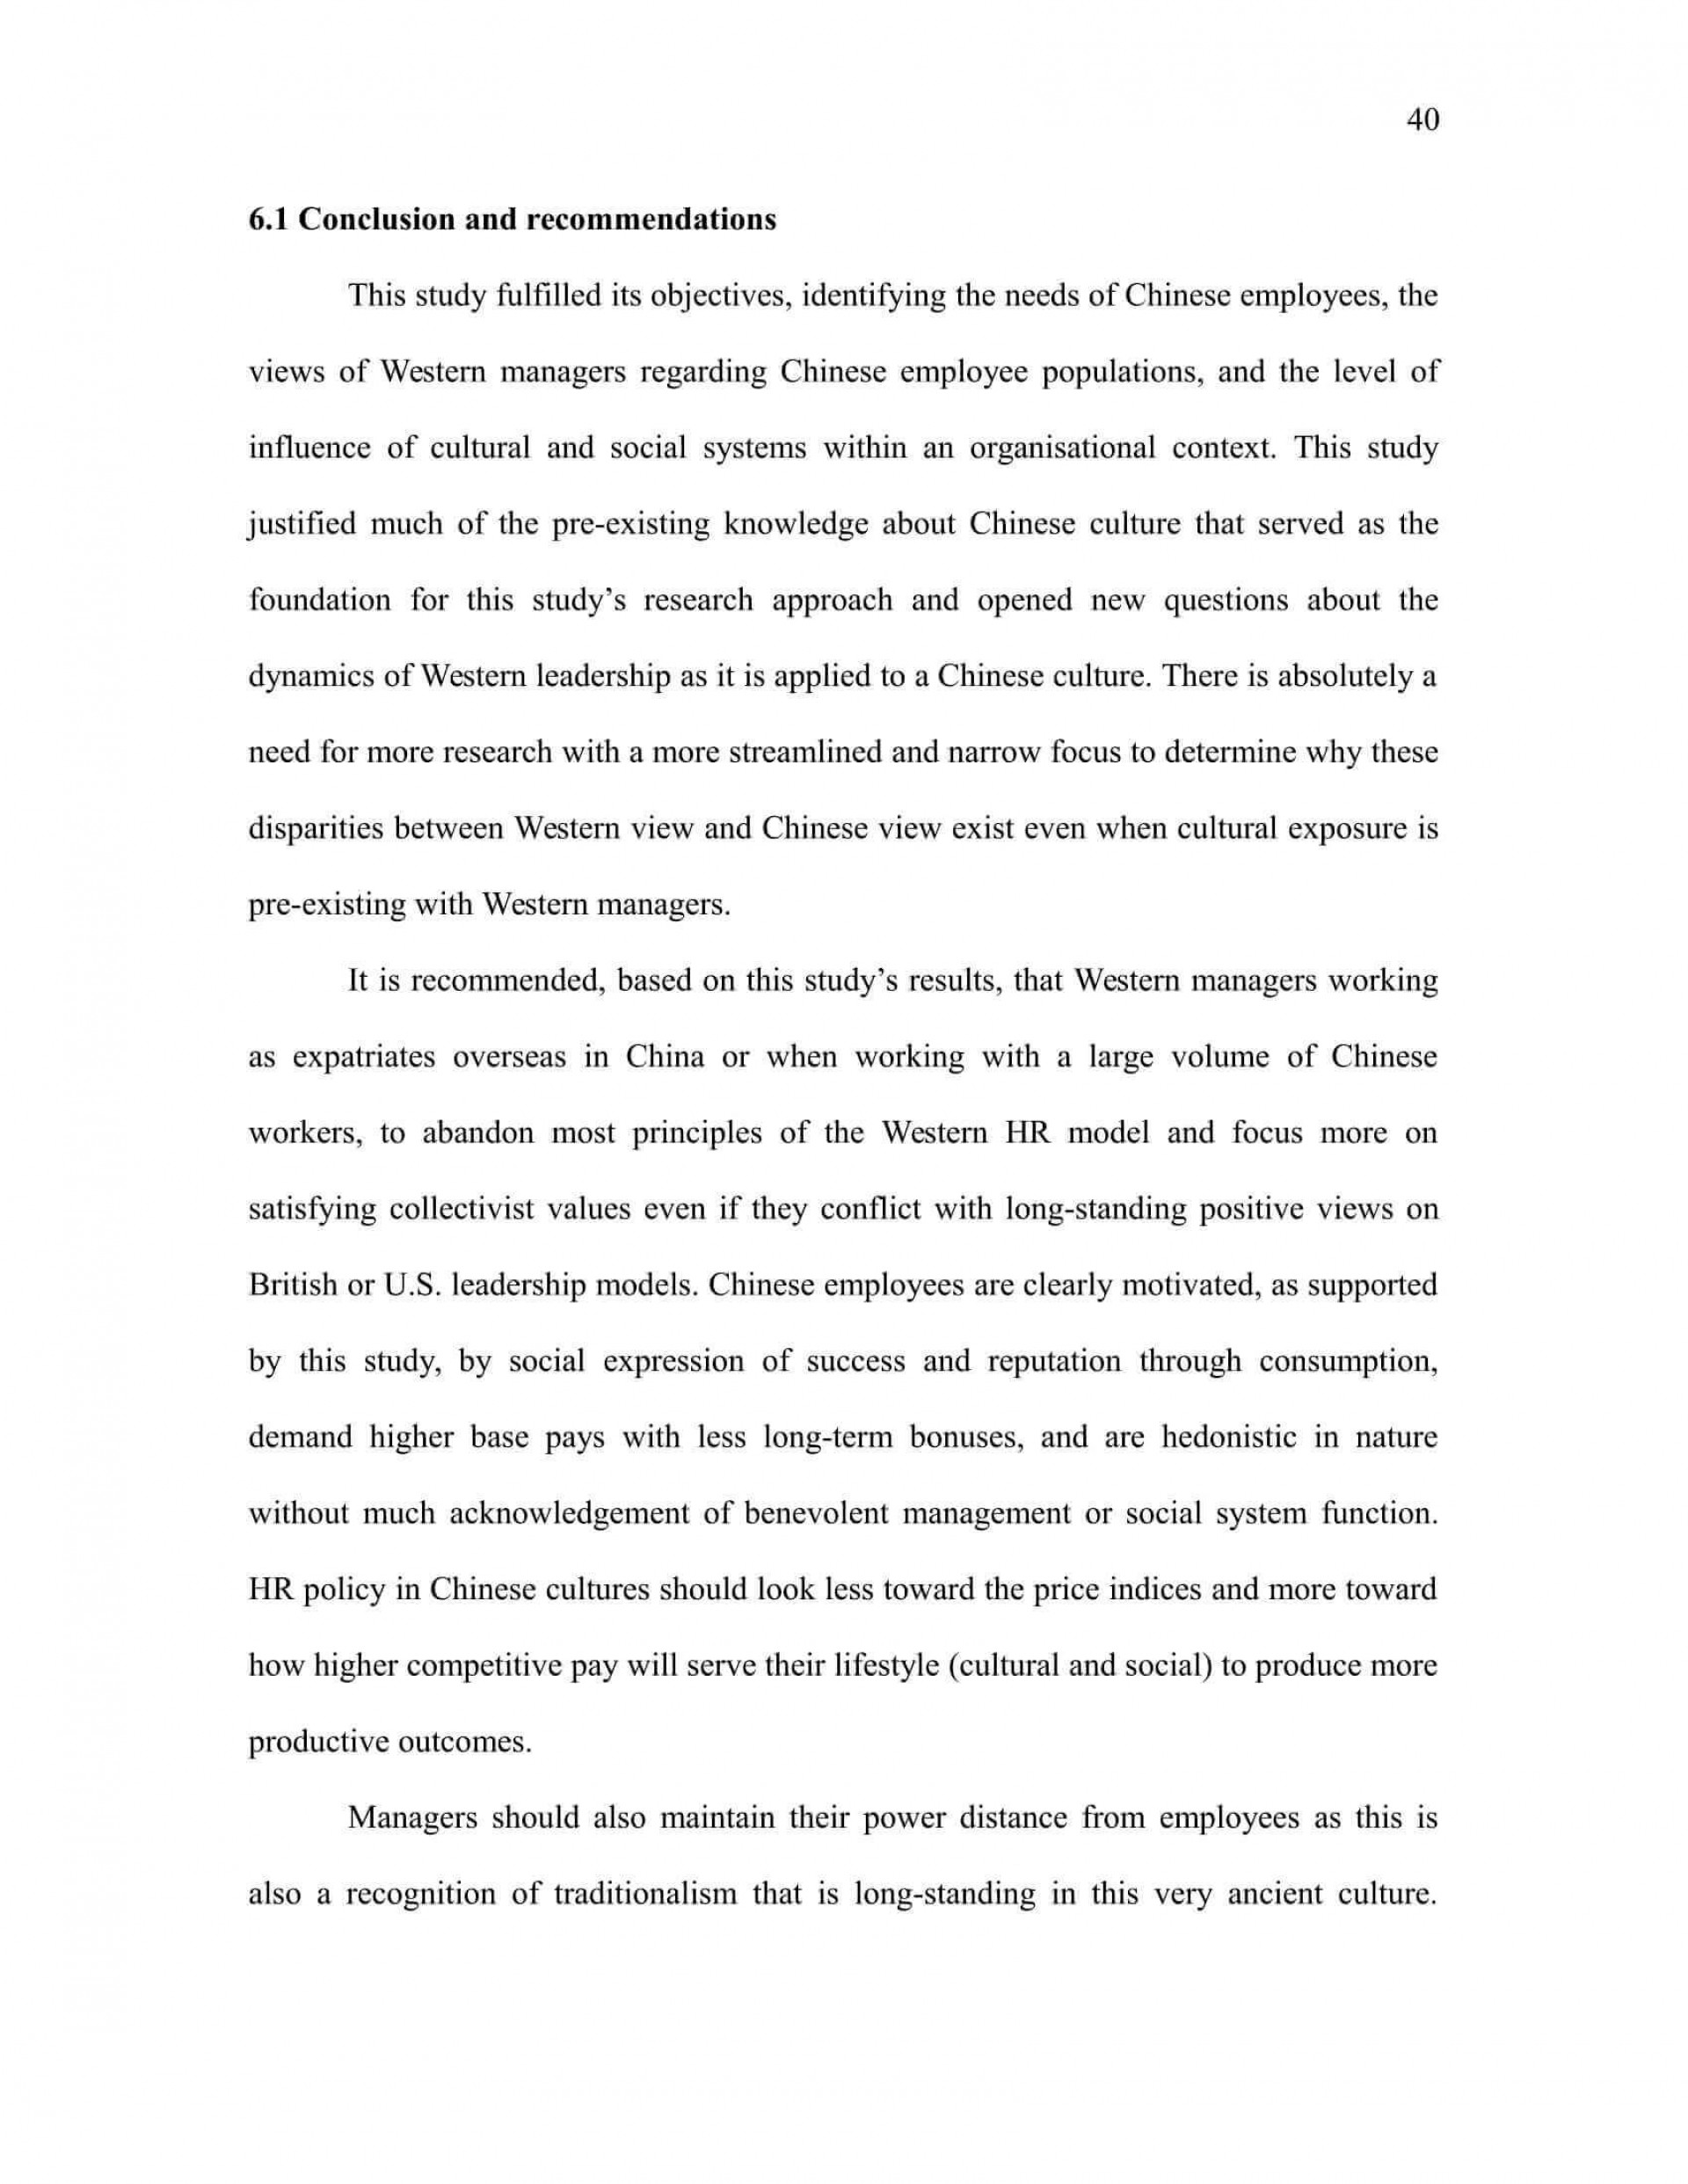 005 Essay Example Culture Stirring Chinese Introduction Organizational Questions Clash Examples 1920